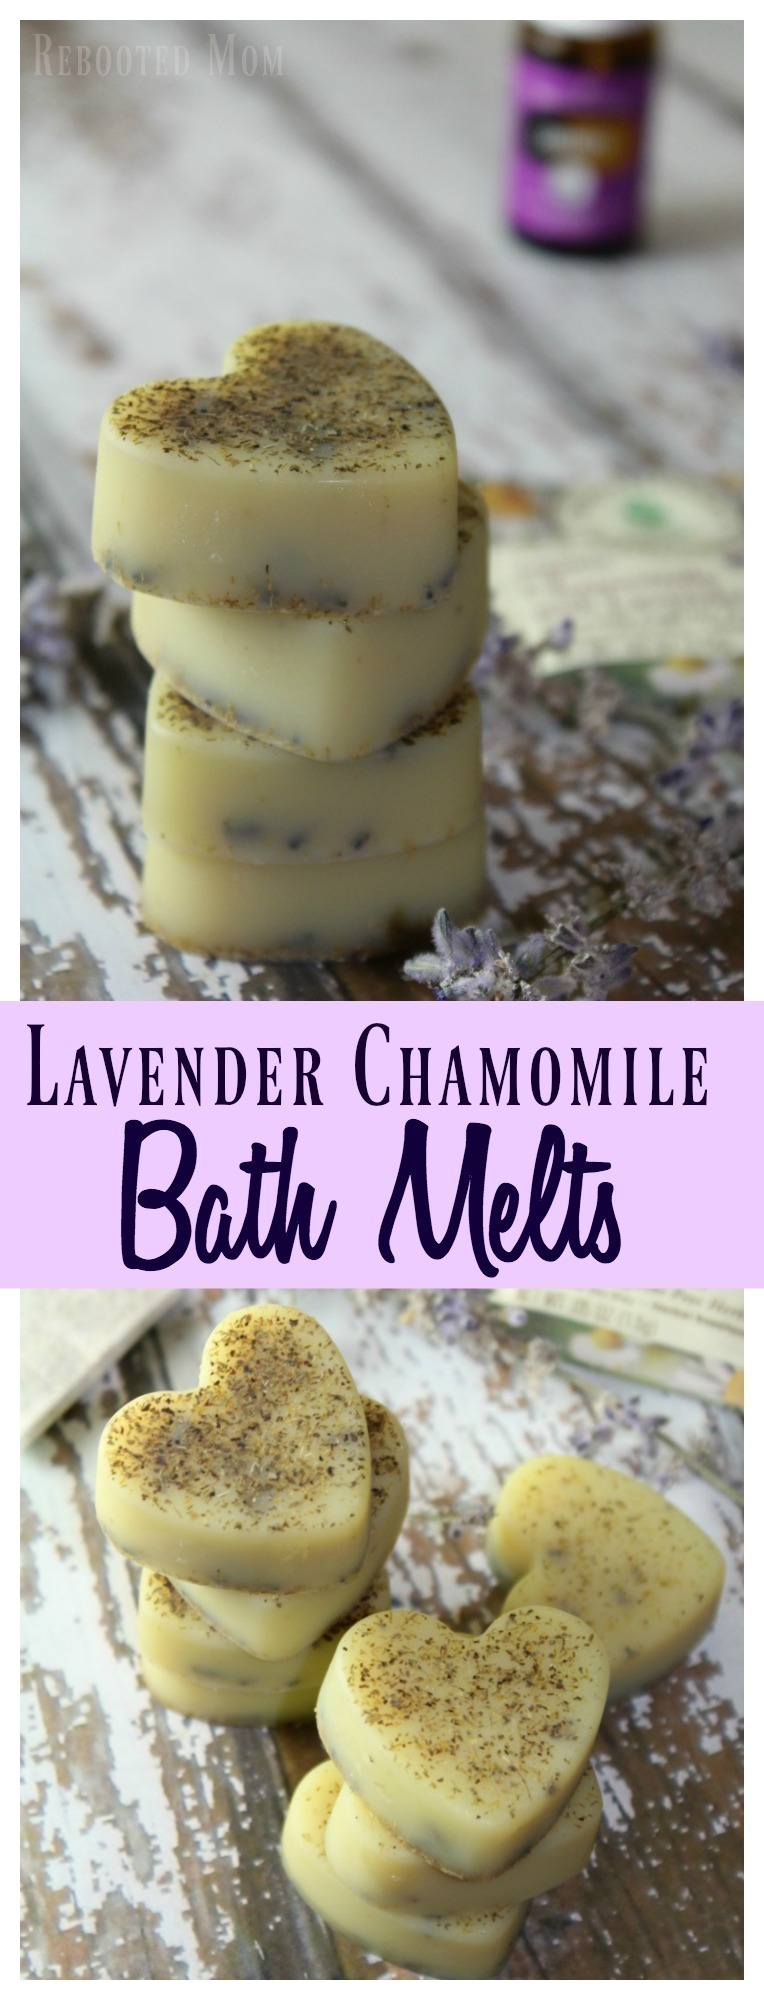 These Lavender Chamomile Bath Melts are incredibly easy to make, and such a fun gift idea for friends, teachers or family!